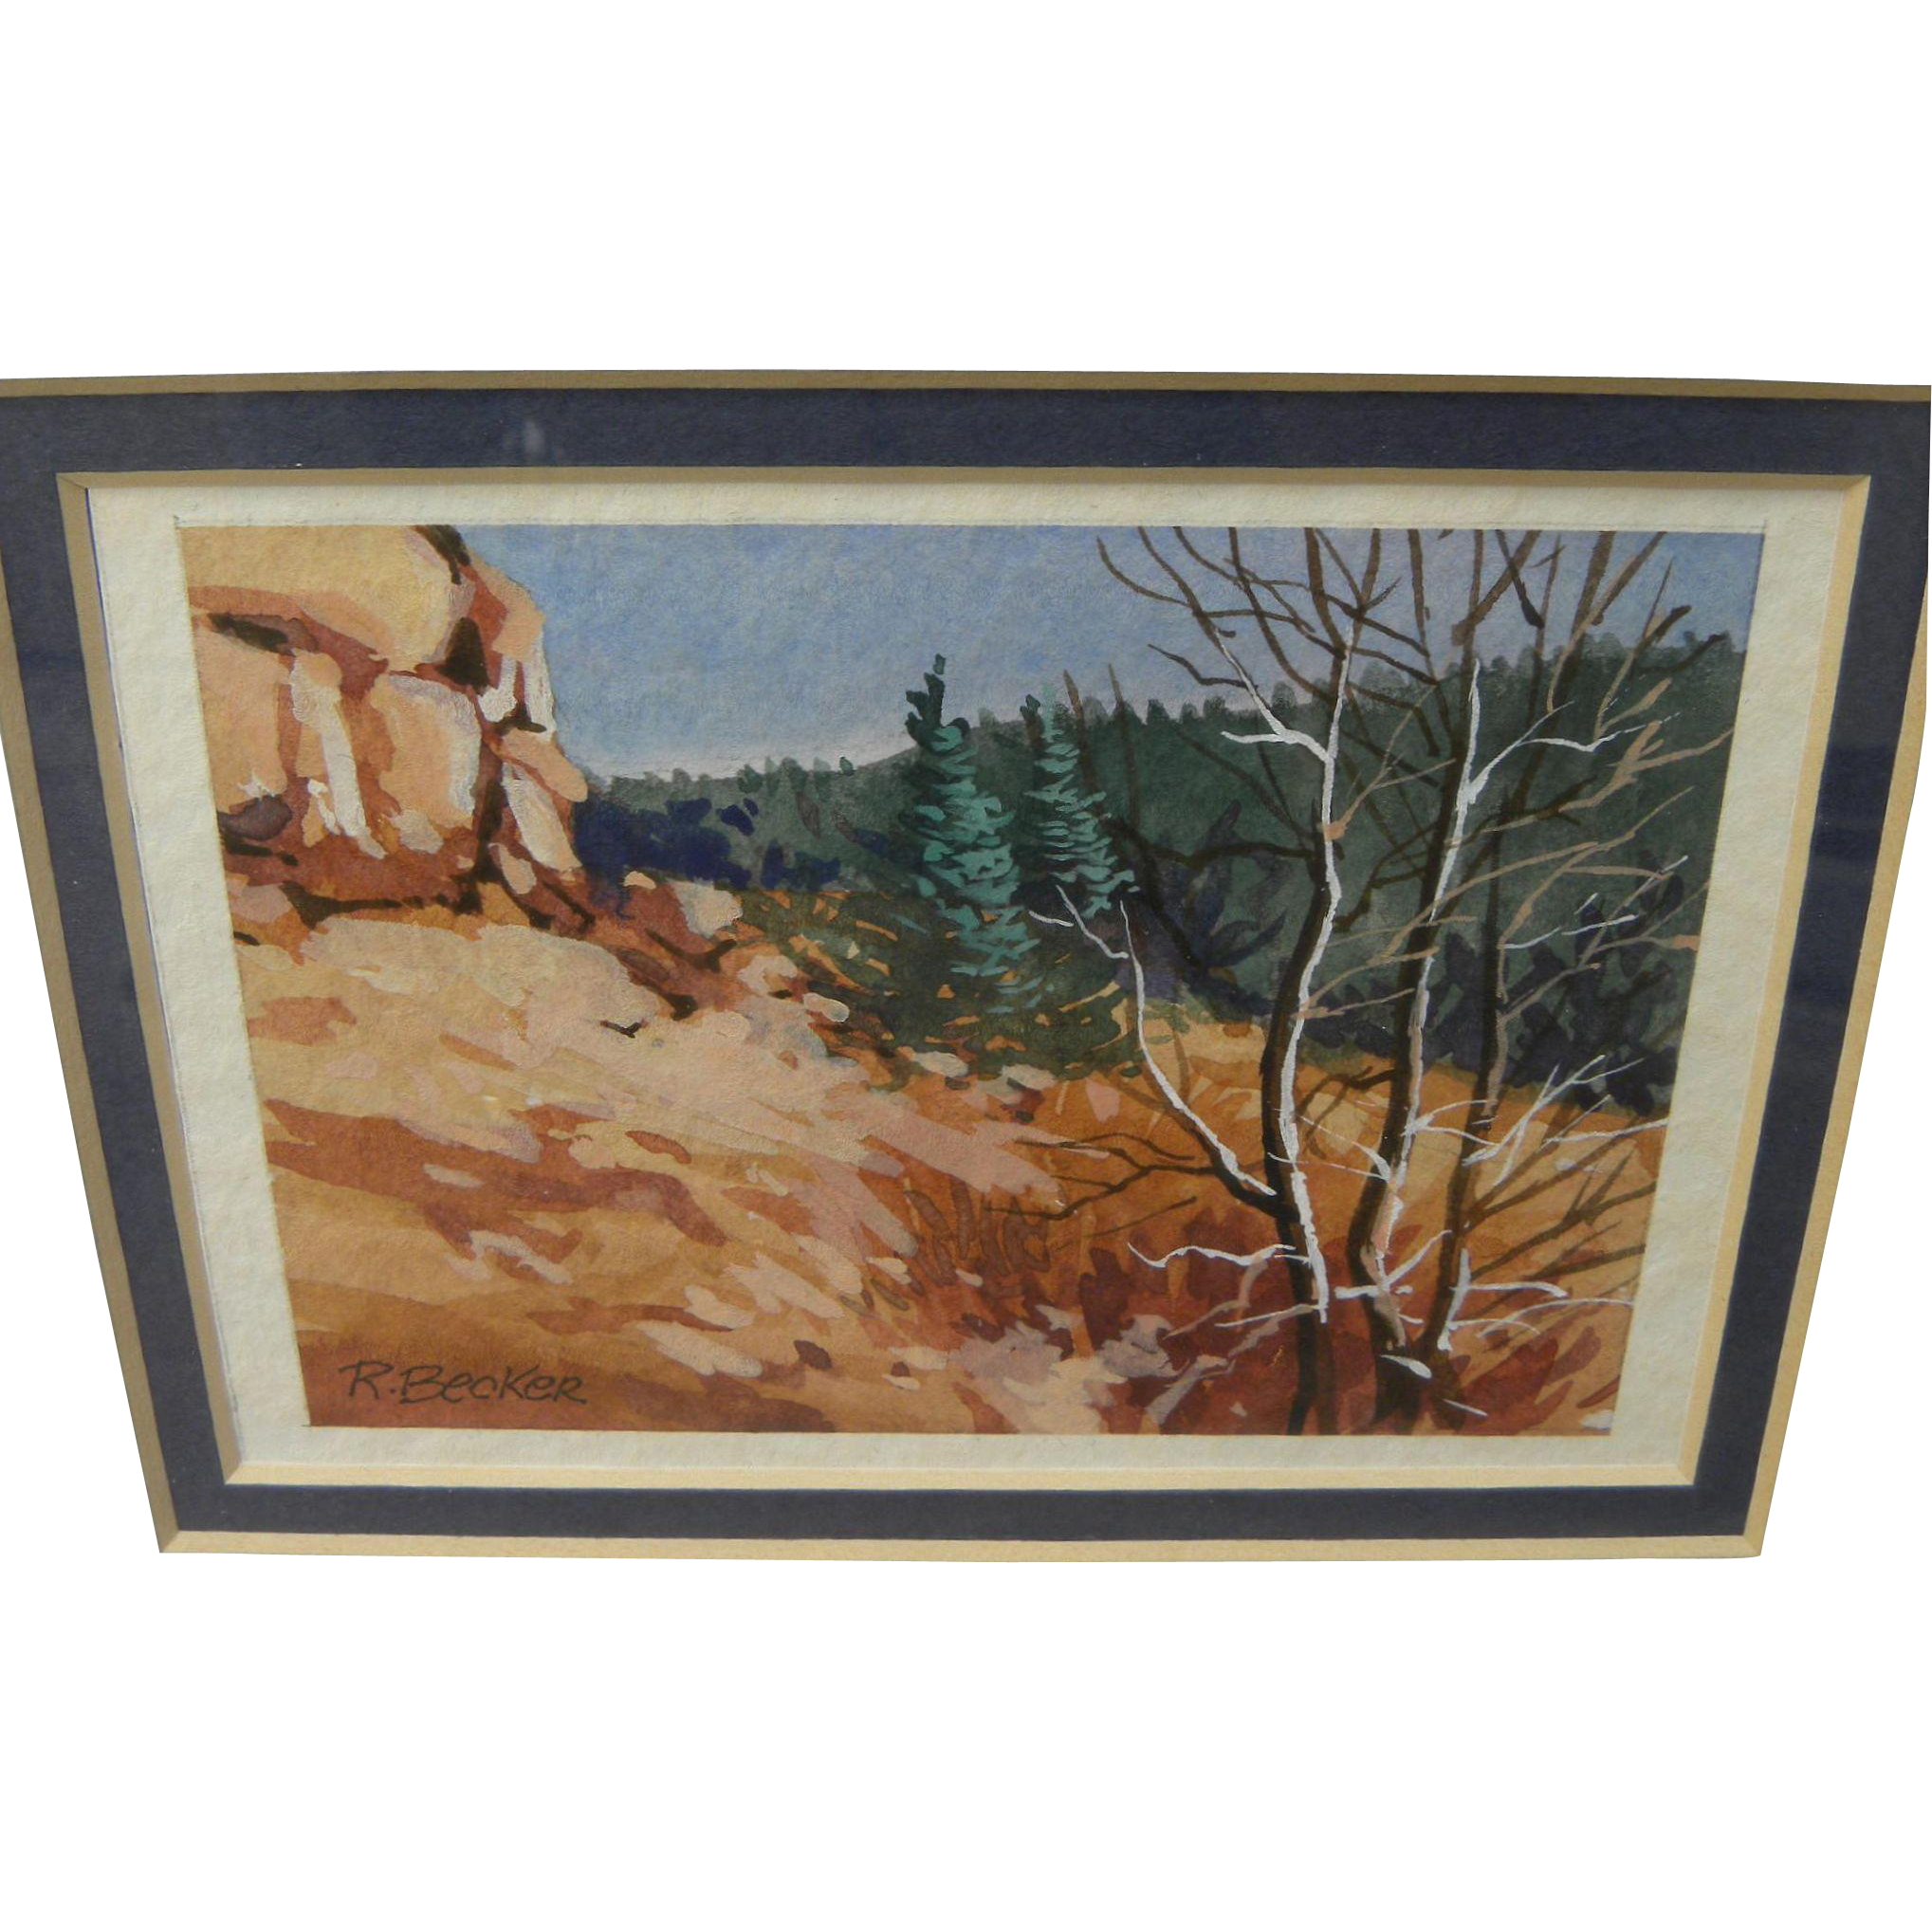 Miniature contemporary watercolor painting of a rocky hillside signed